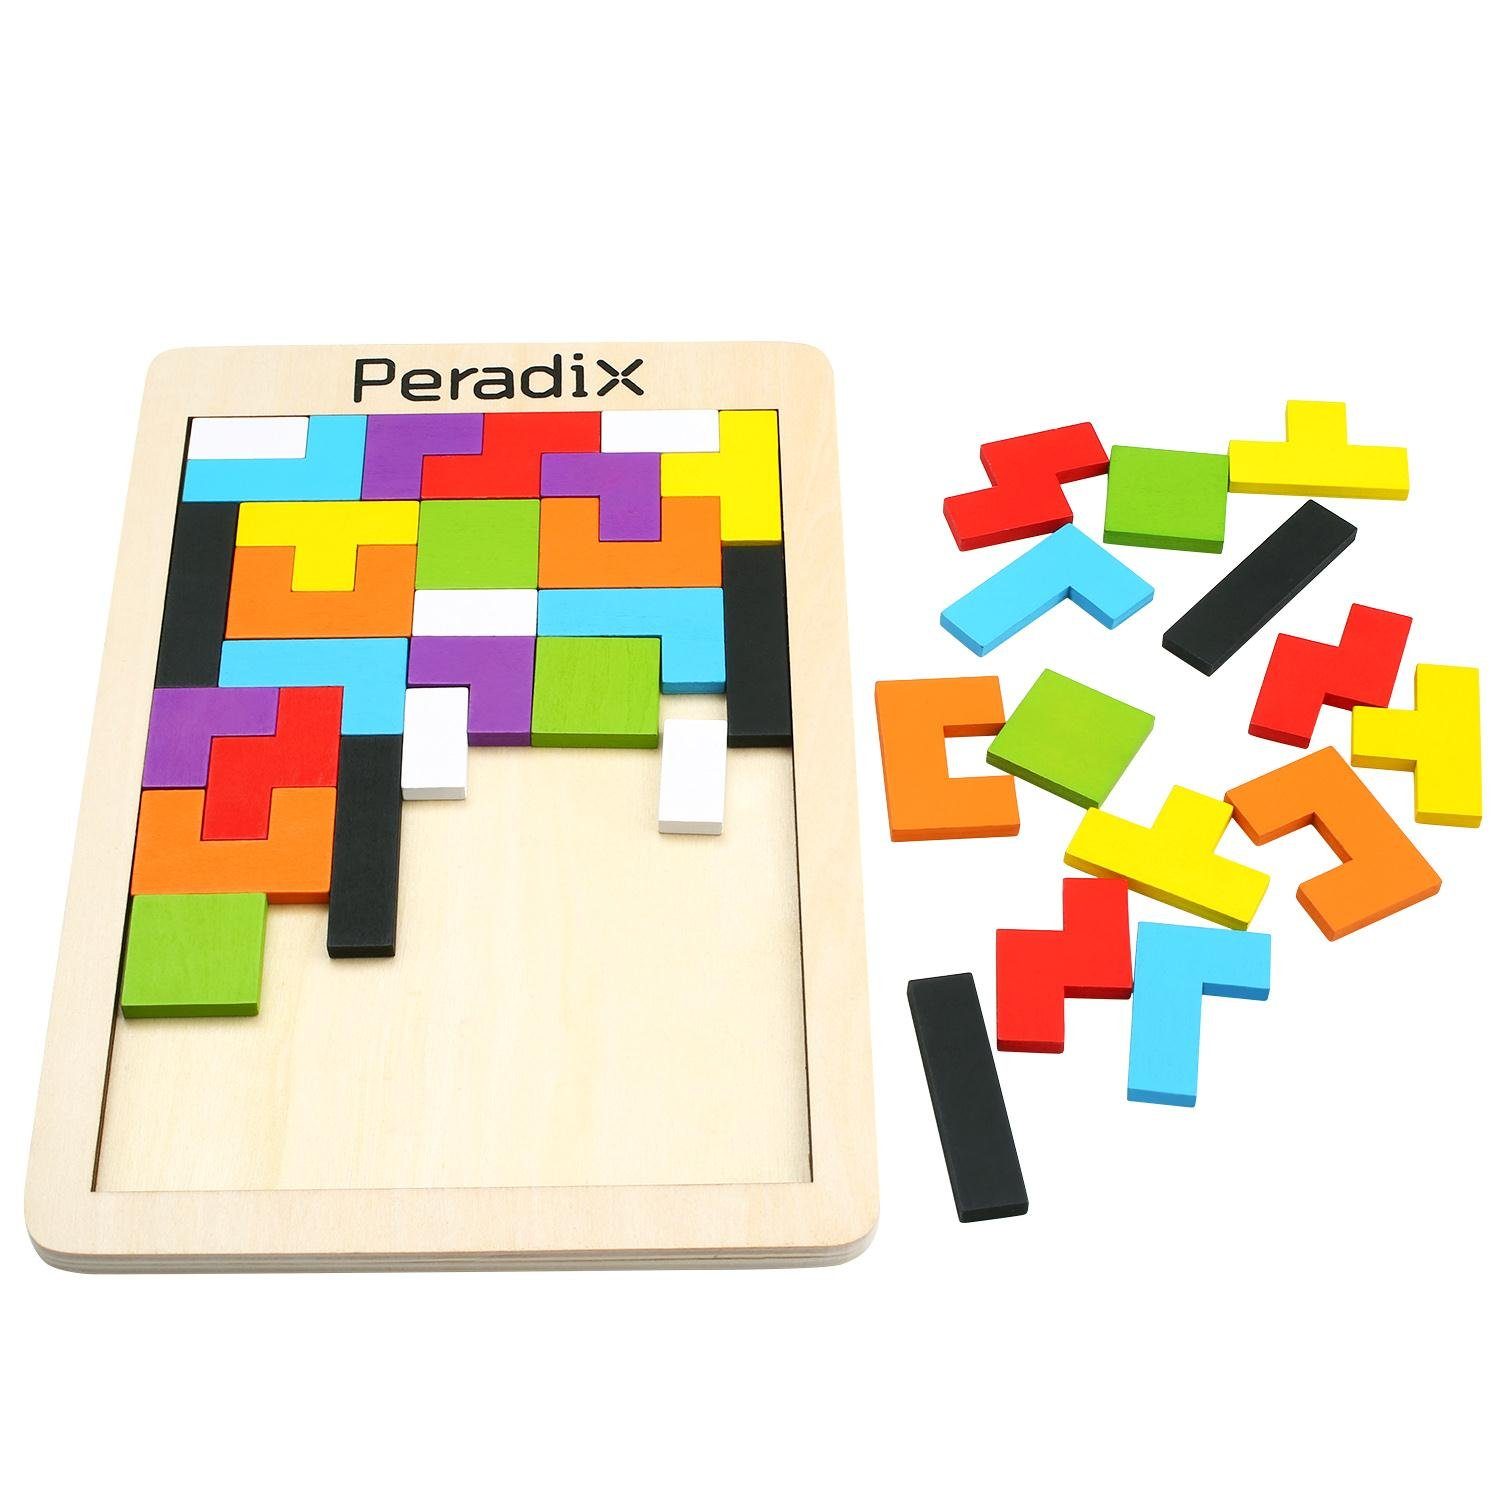 Wooden Tetris Jigsaw Puzzle Brain Teaser Tangram Board Game Toys Colorful Building Blocks for Toddlers Imagination Education by Peradix